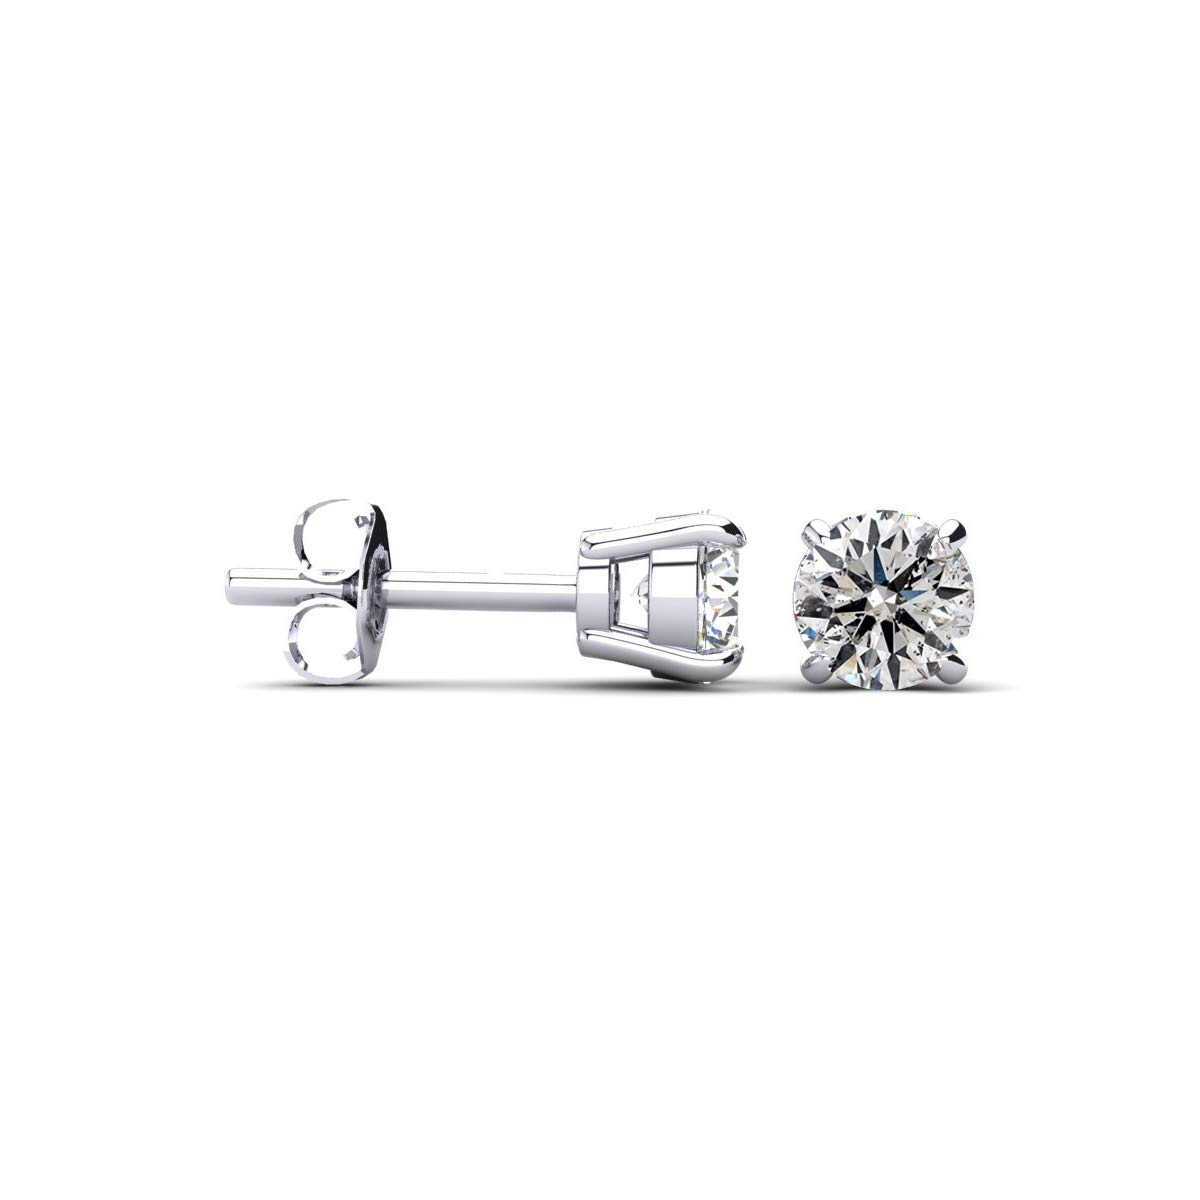 1 1/2 Cttw 14k White Gold Round Diamond Stud Earrings (AGS Certified G-H, I2-I3)